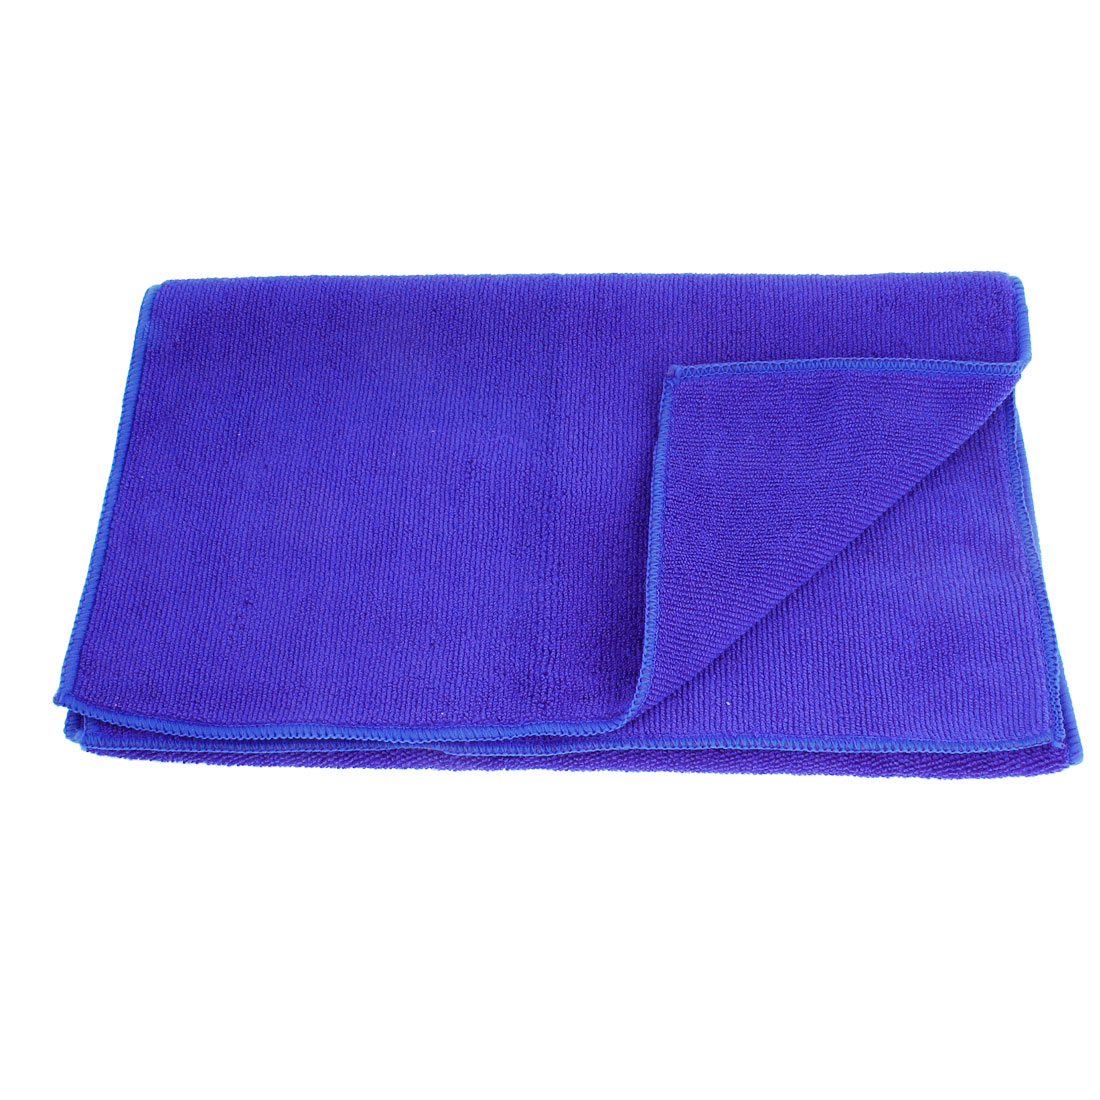 "Rectangular Blue 31.5"" x 13.4"" Microfiber Cleaning Cloth Towel for Car Vehicle"